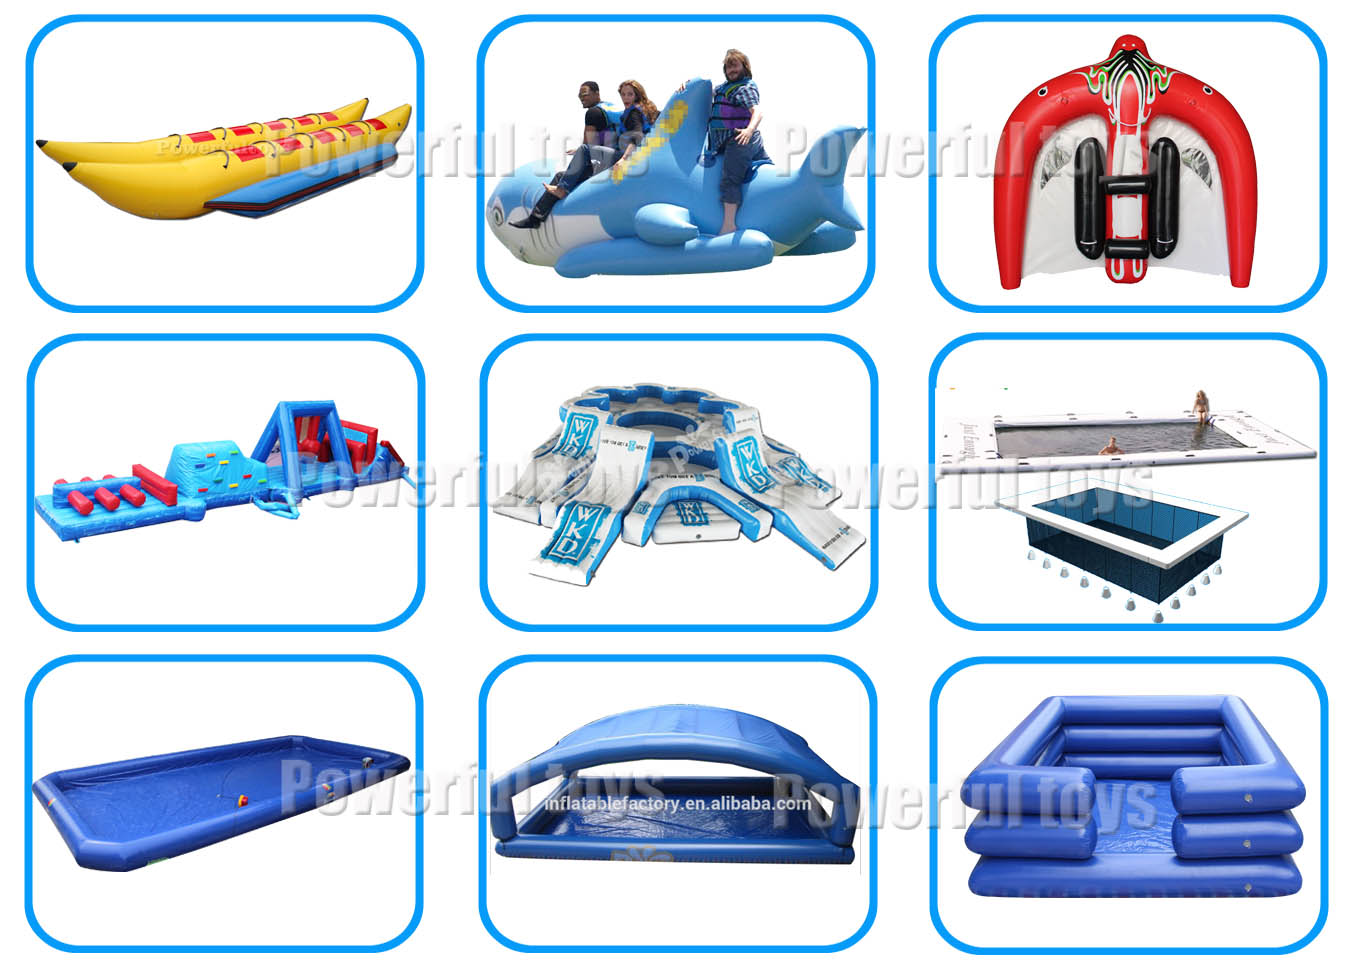 Powerful Toys durable inflatable water play amusement park-9